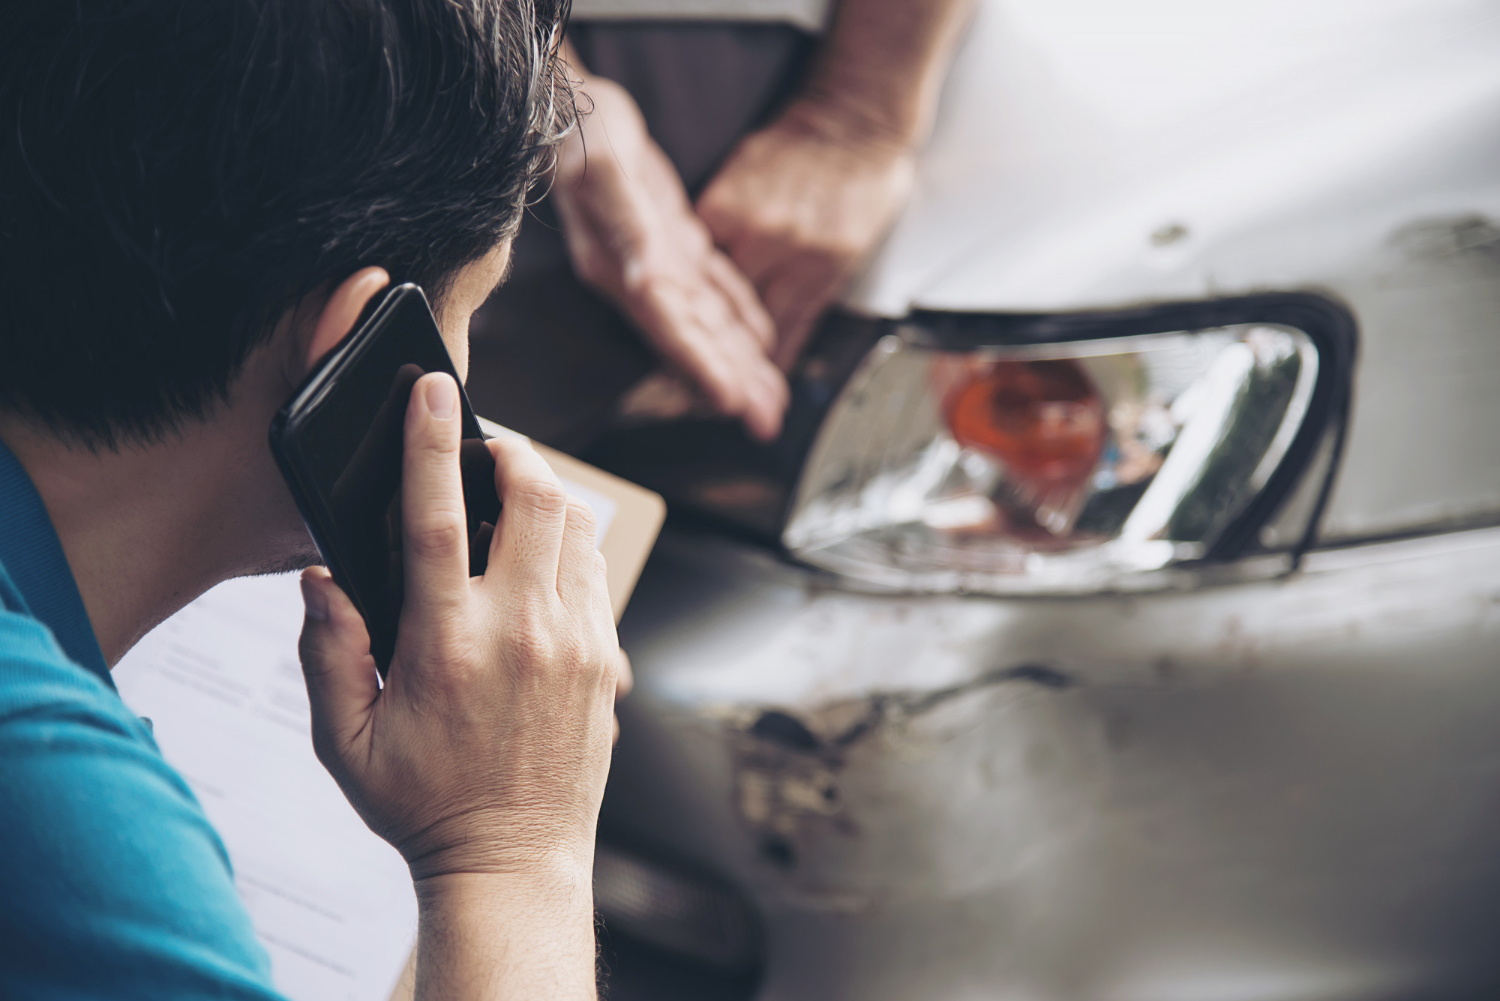 Man on phone after getting into a car accident